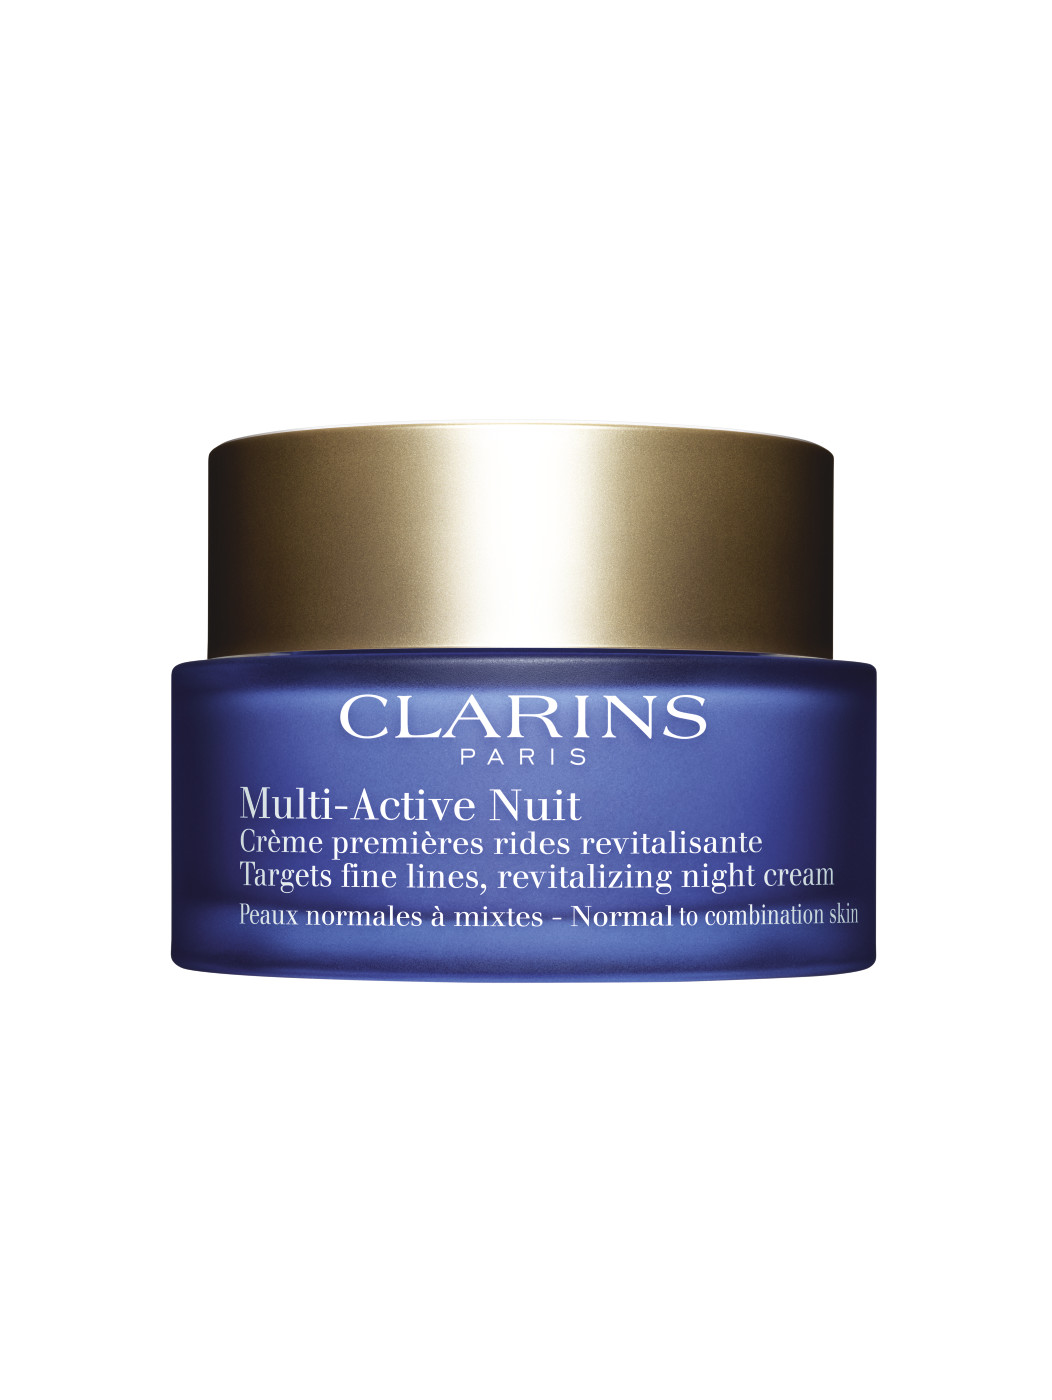 CLARINS MULTI-ACTIVE NOCHE CREMA LIGERA 50 ML P/MIXTAS